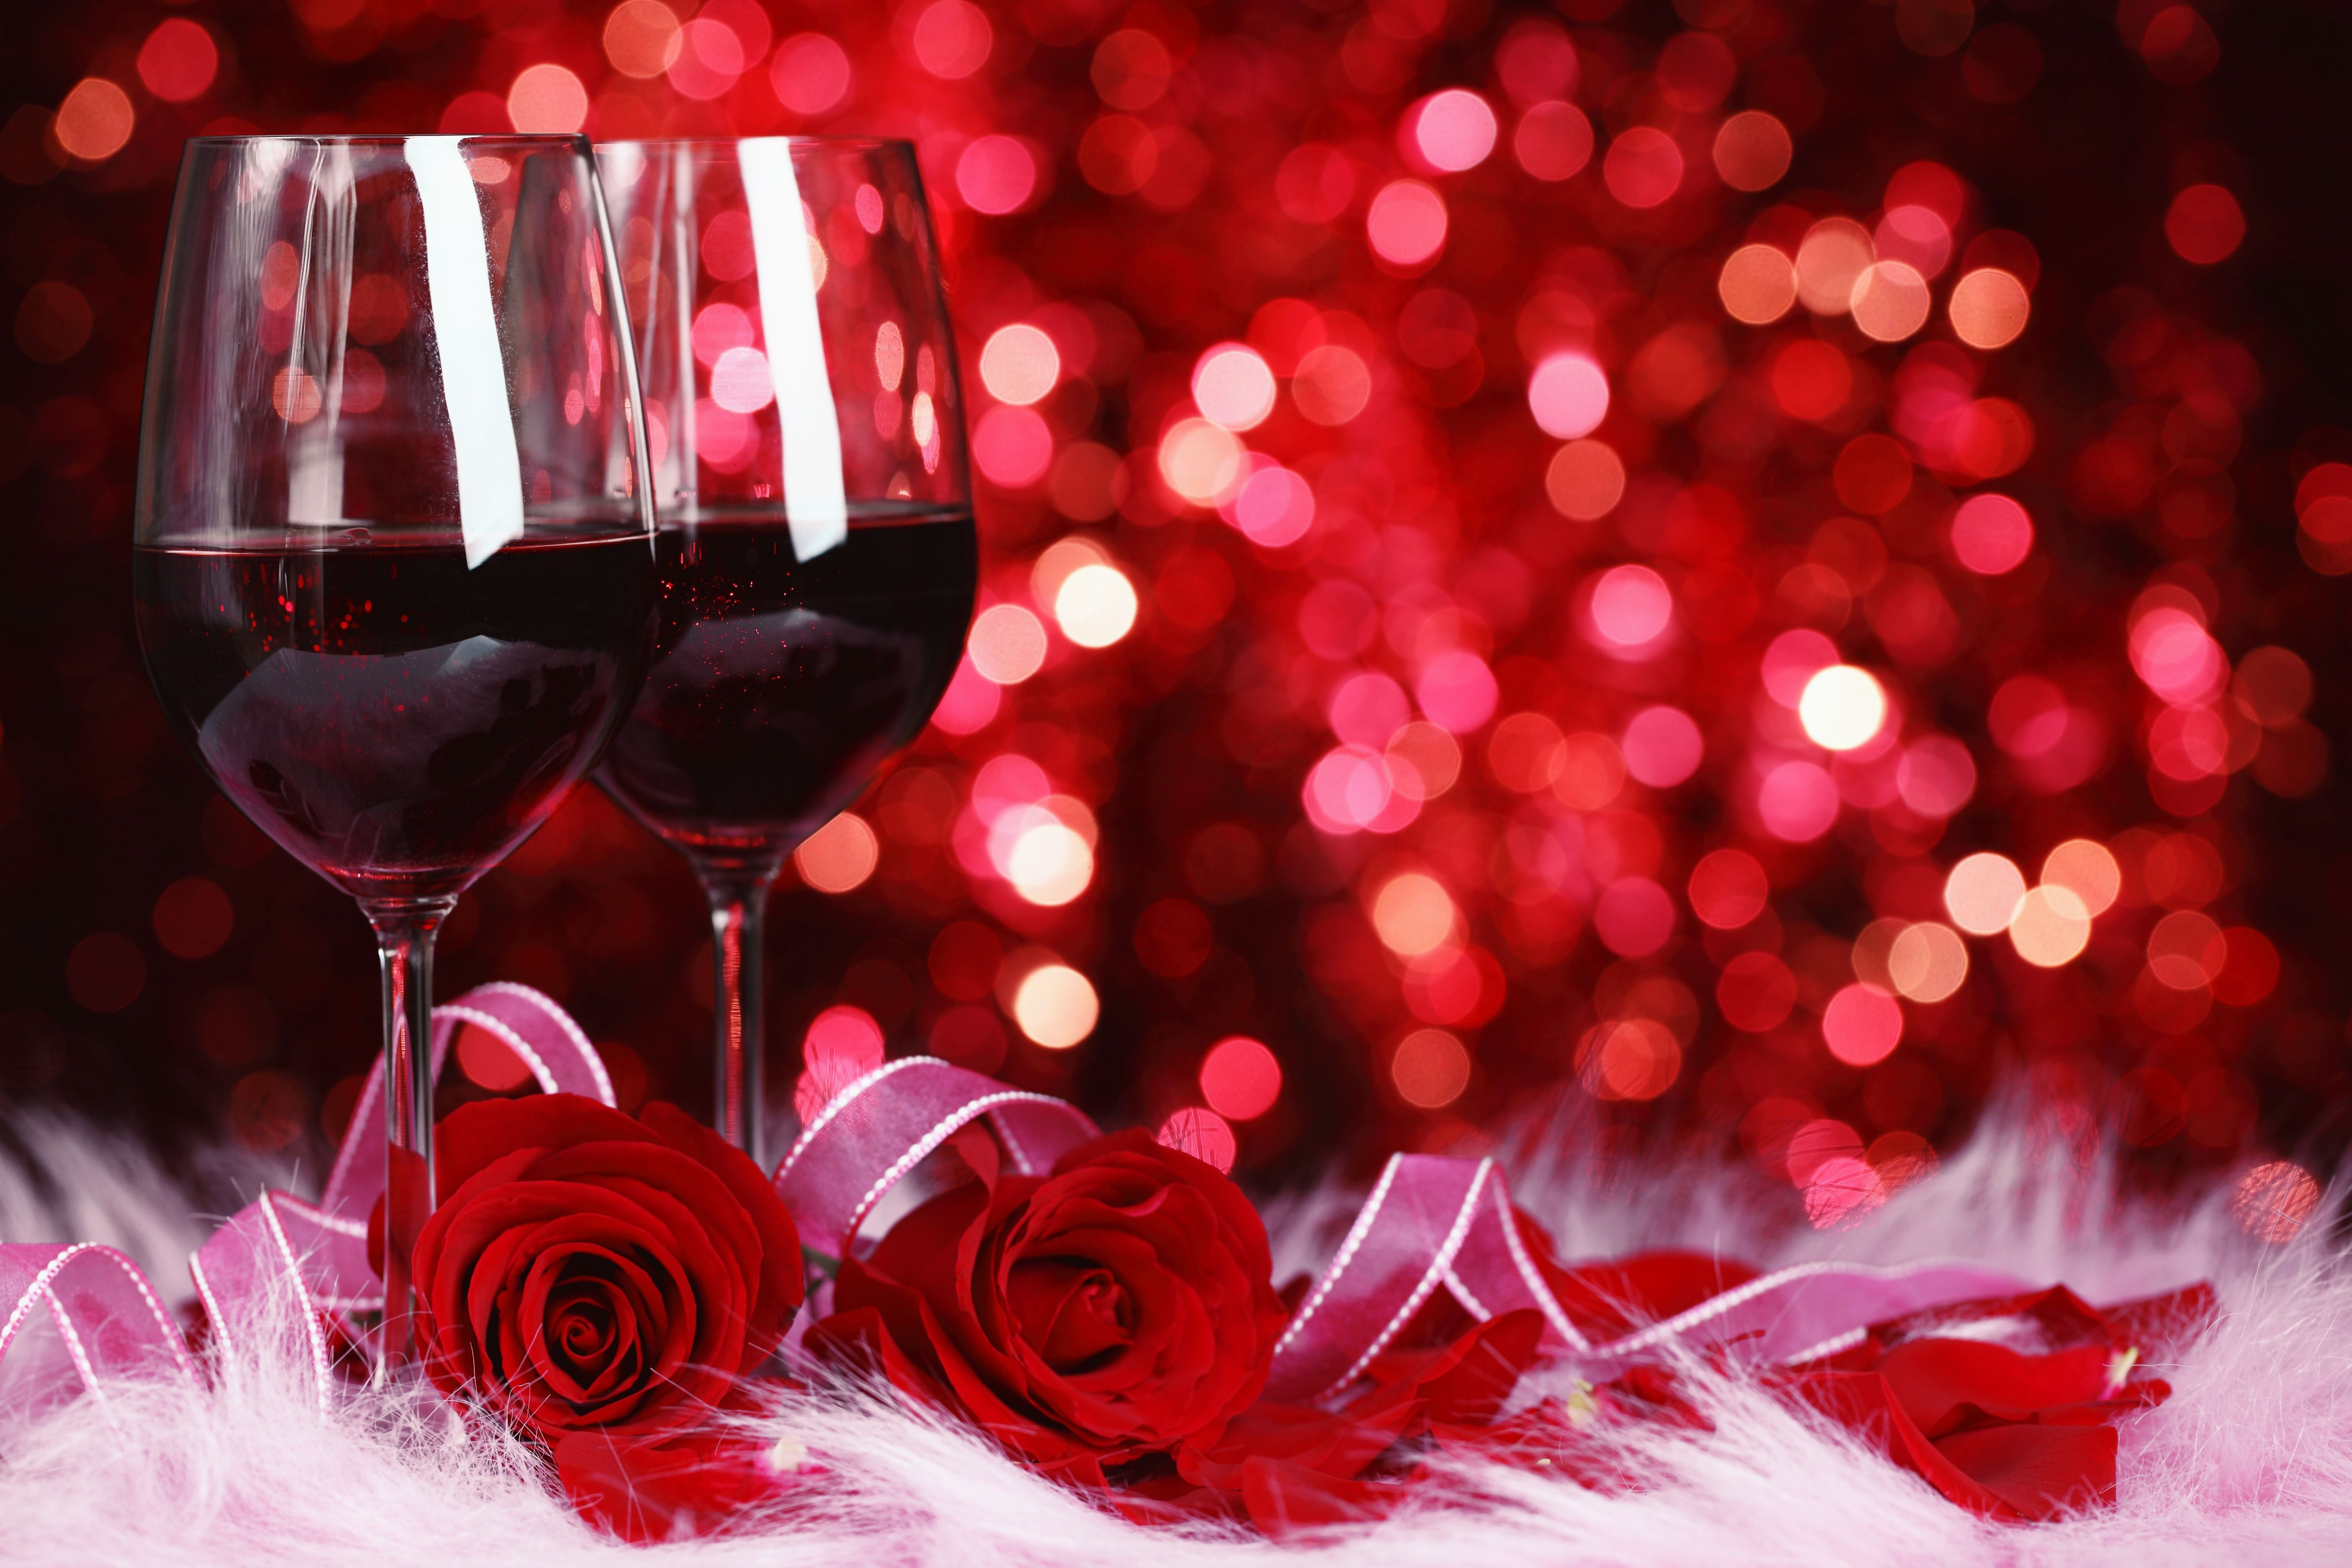 Romantic Background With Roses And Glasses Of Red Wine Gallery Yopriceville High Quality Images And Wine Wallpaper Saint Valentine Valentine S Day Events